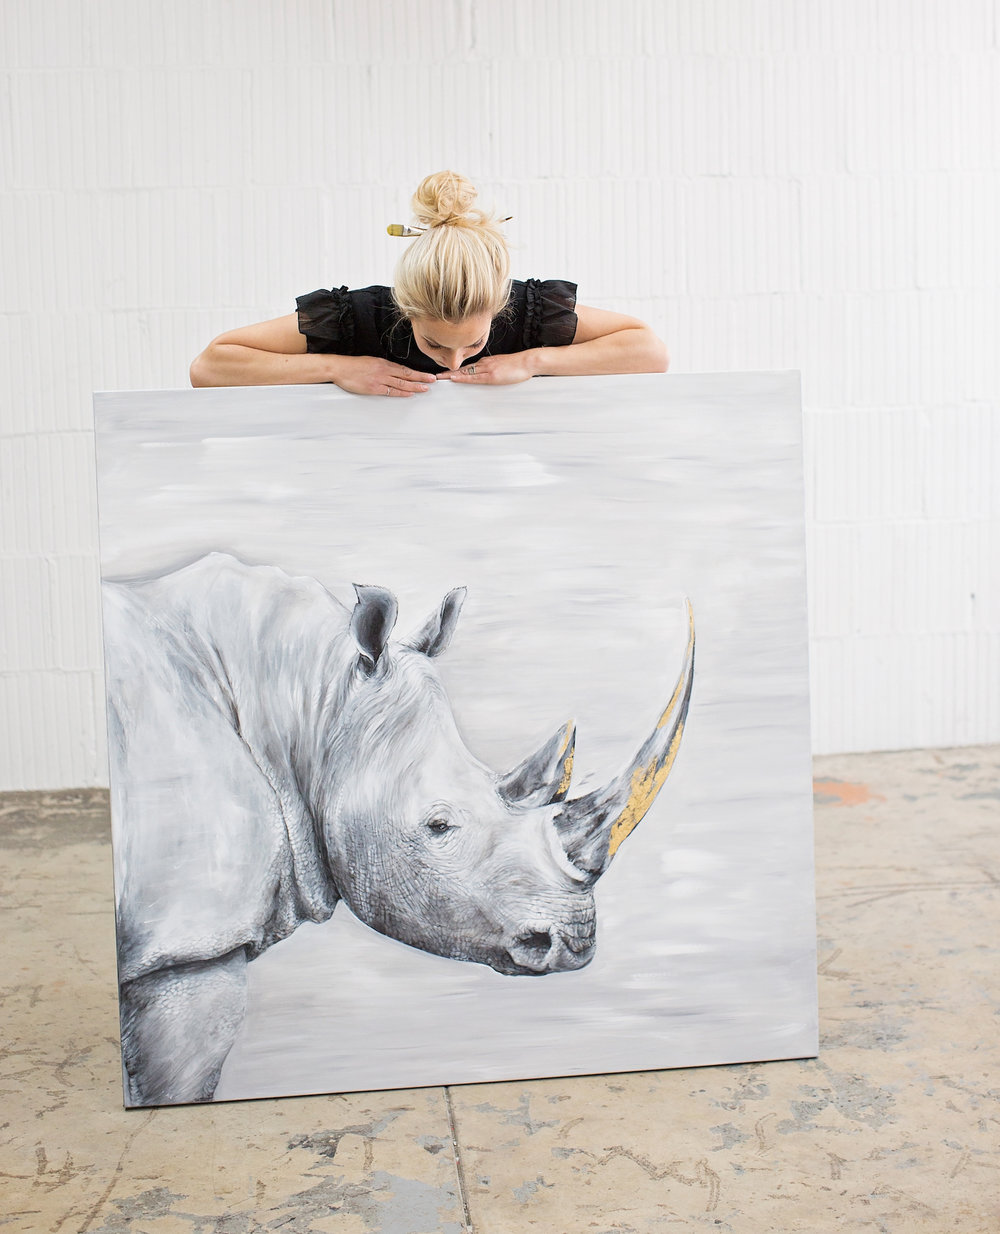 aliarmstrong_White rhino painting